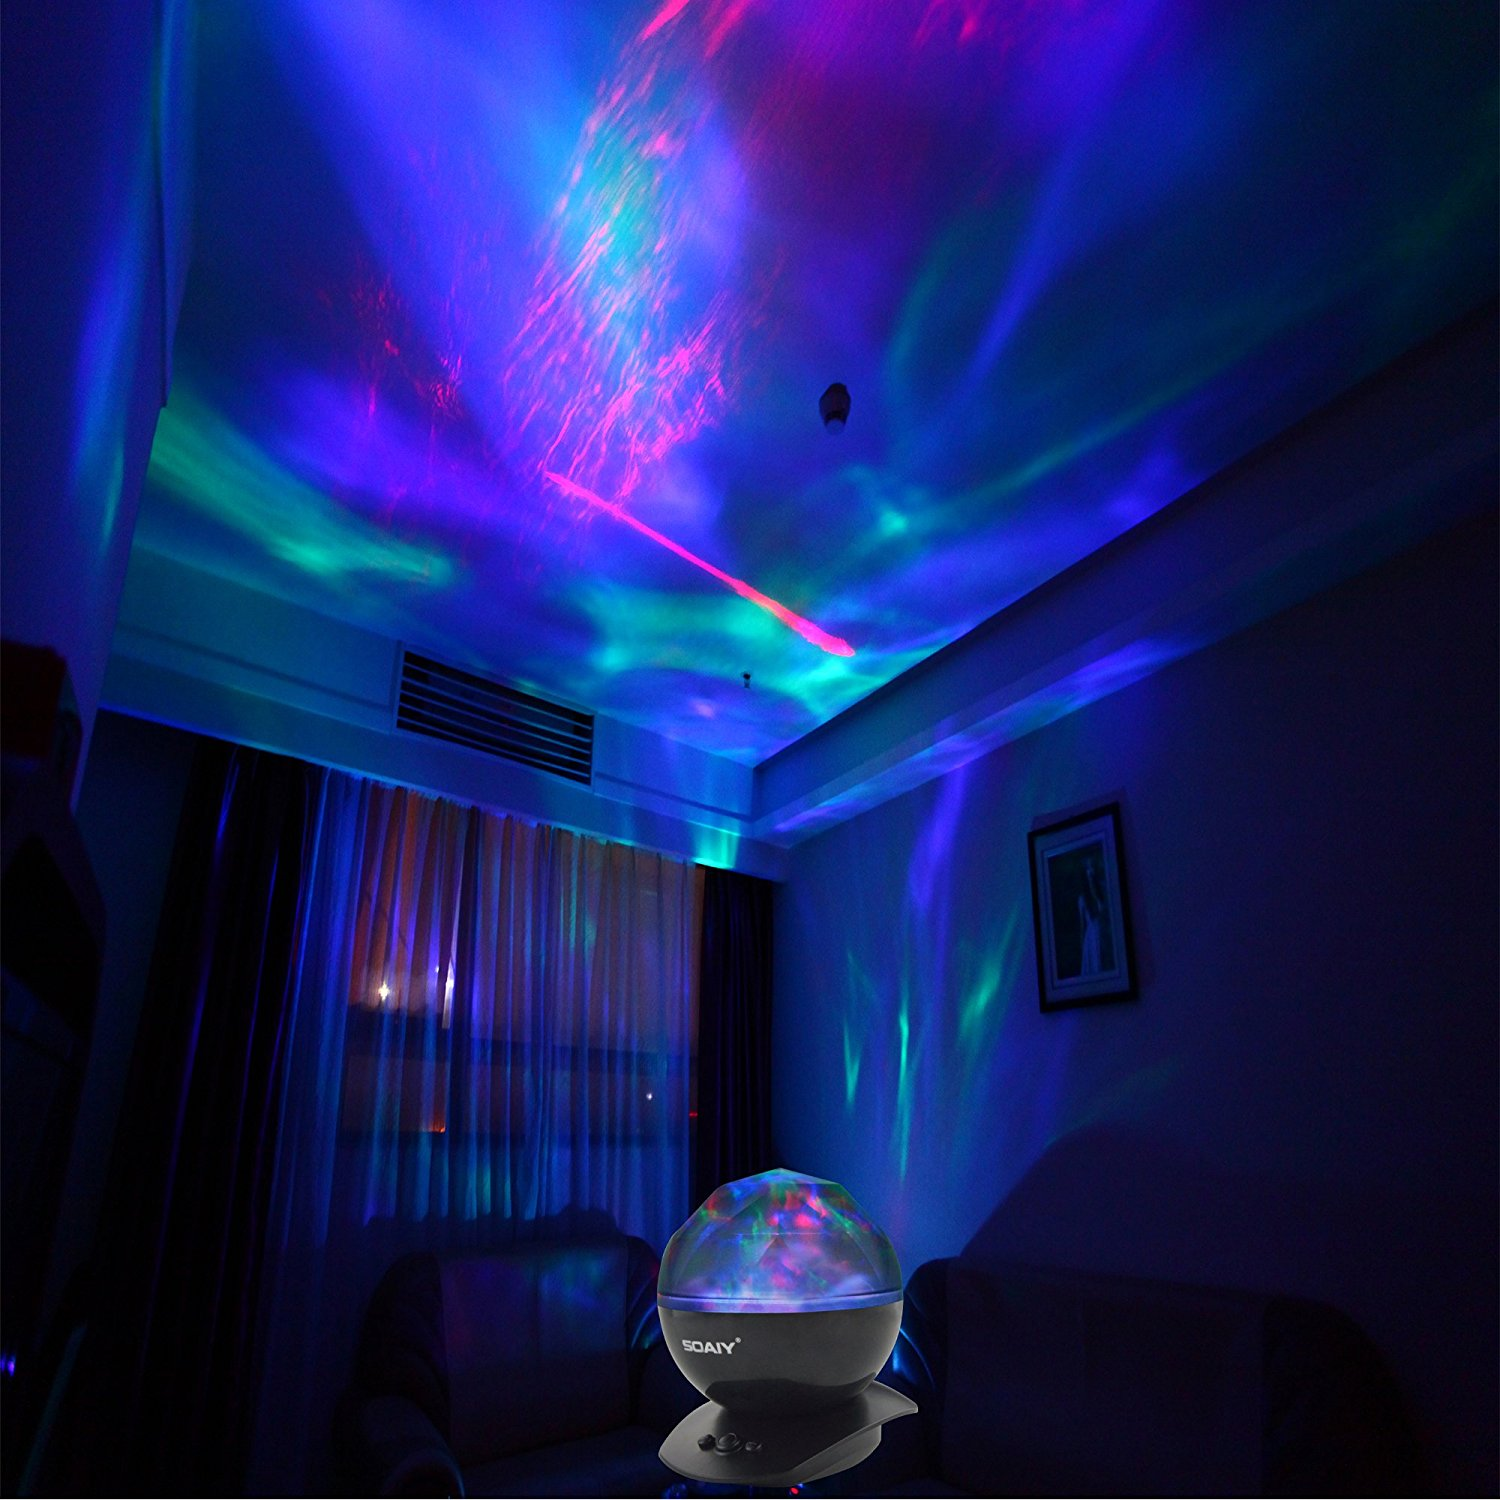 Soaiy kids night light projector ocean wave star light projector rotating led light show projector night lamp for toddler children adults kids room baby